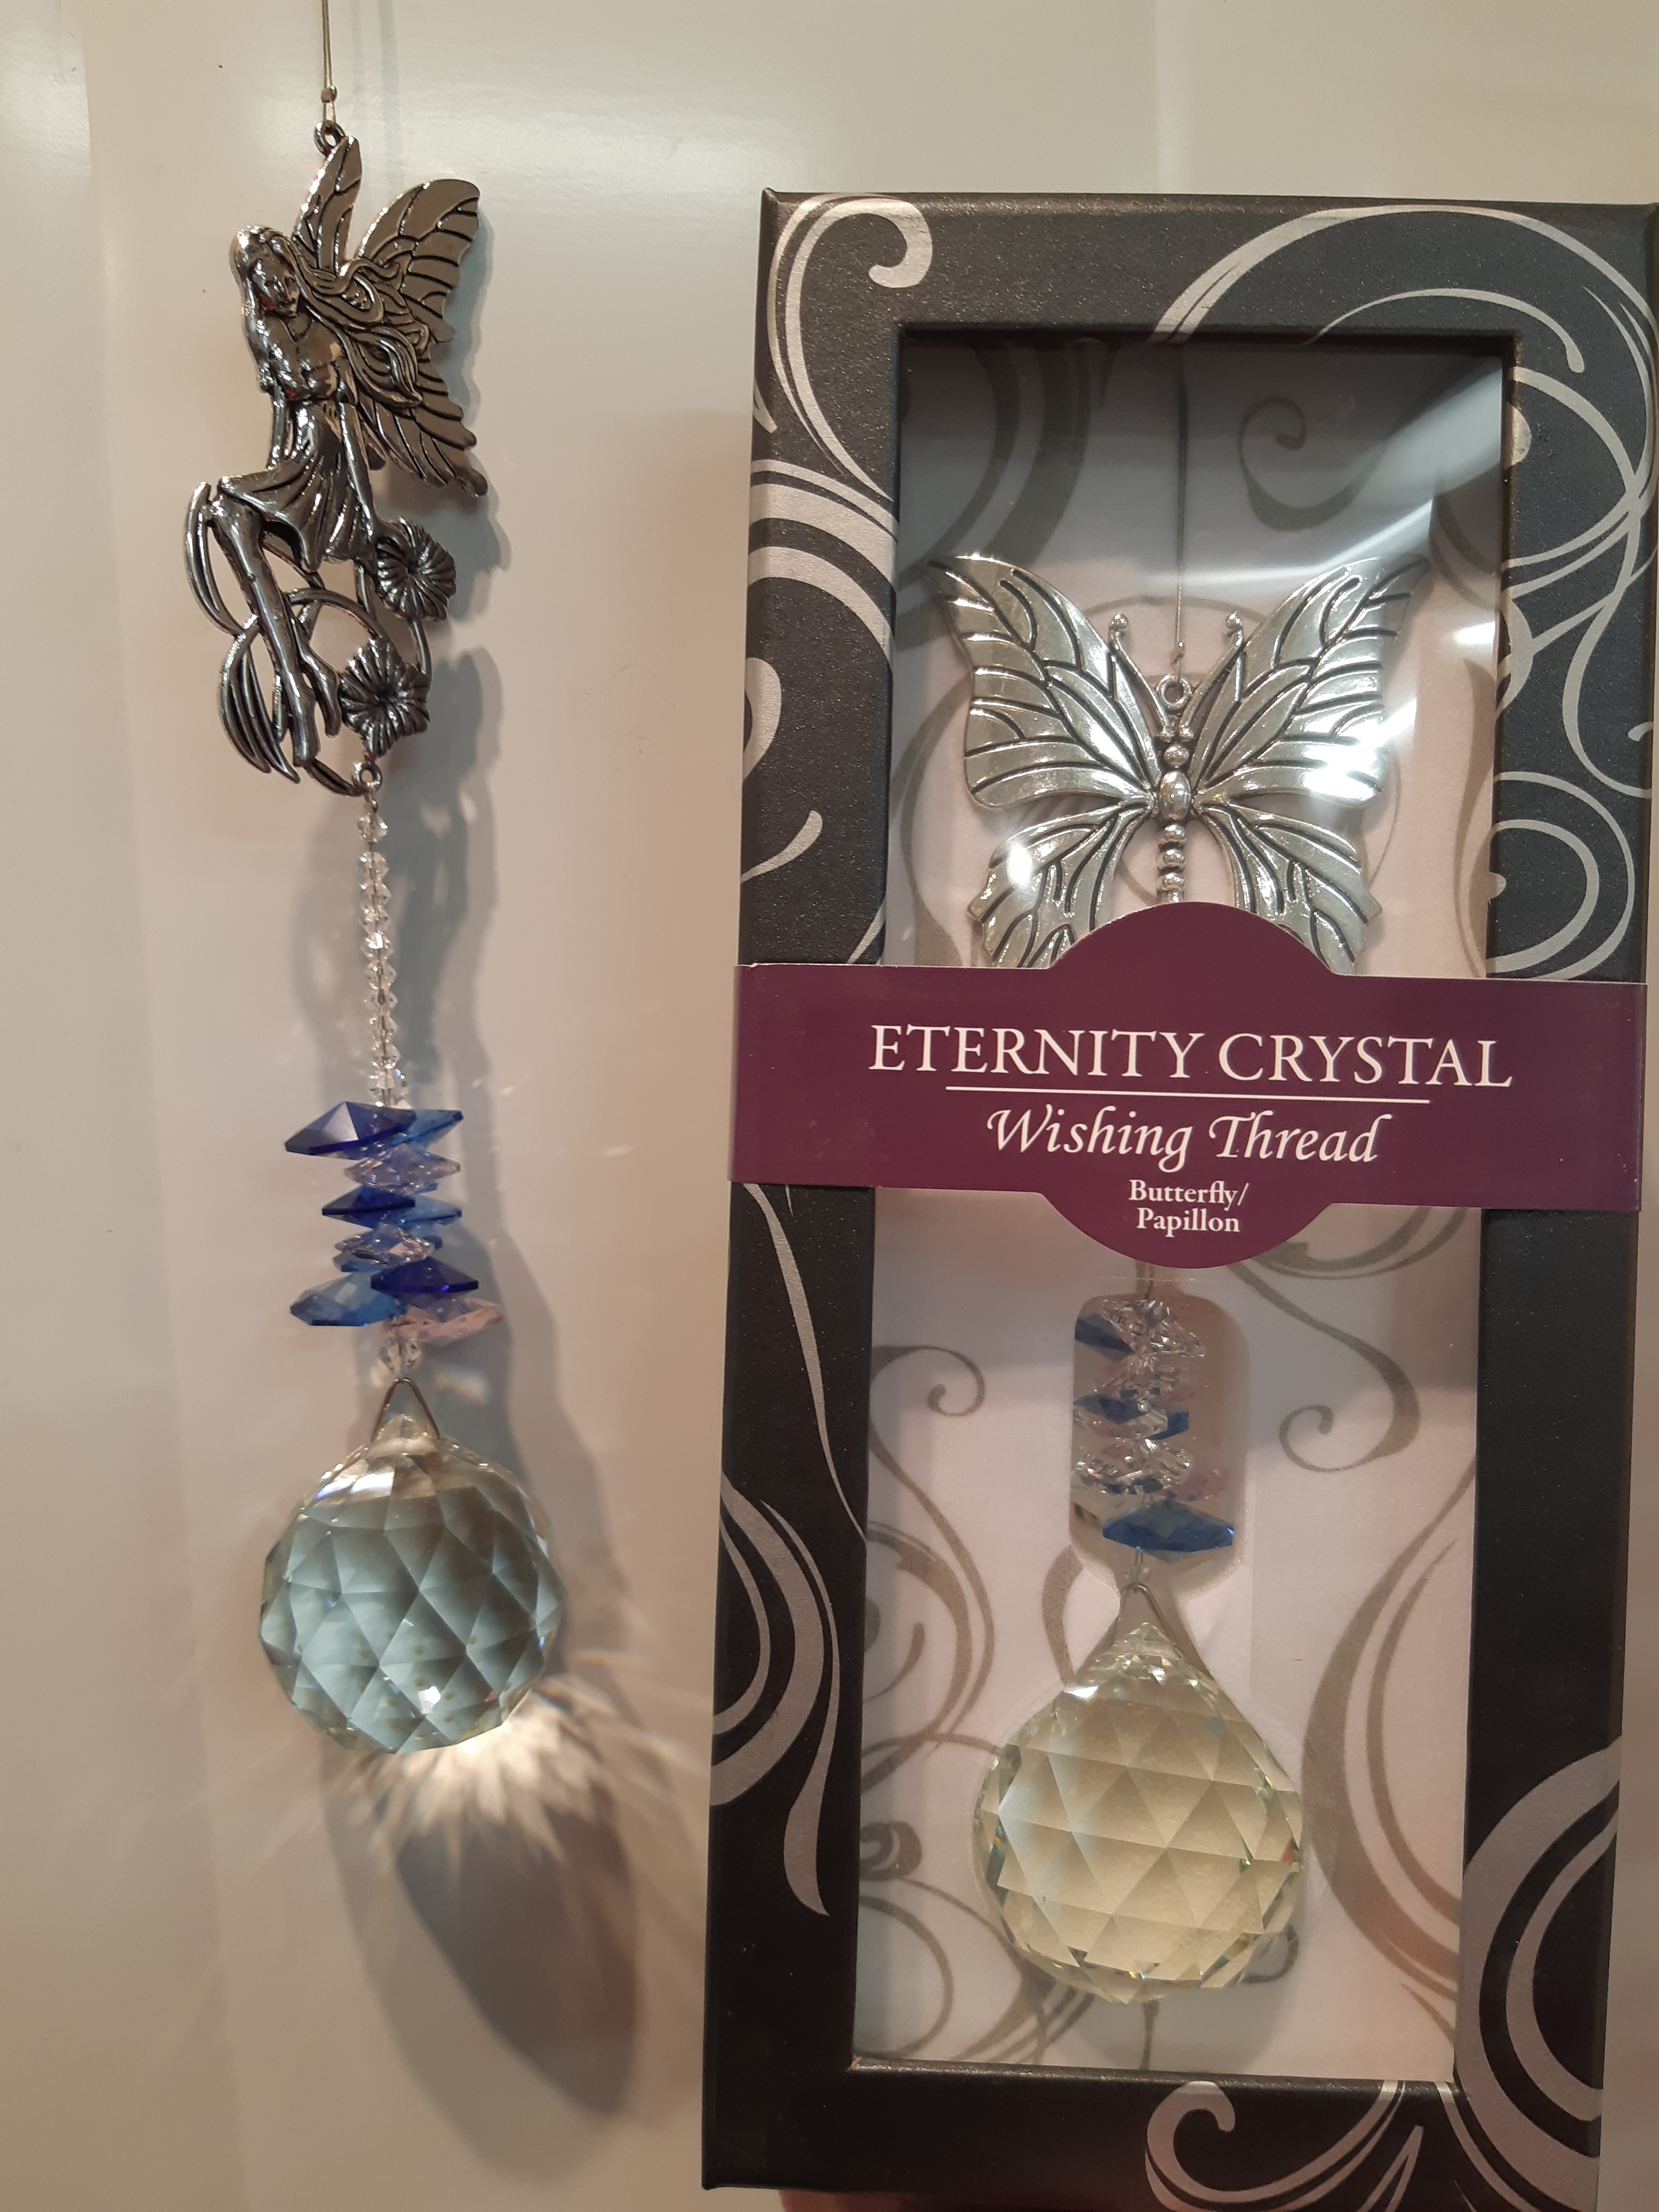 Eternity Crystal Wishing Thread Prism with Assorted Charms